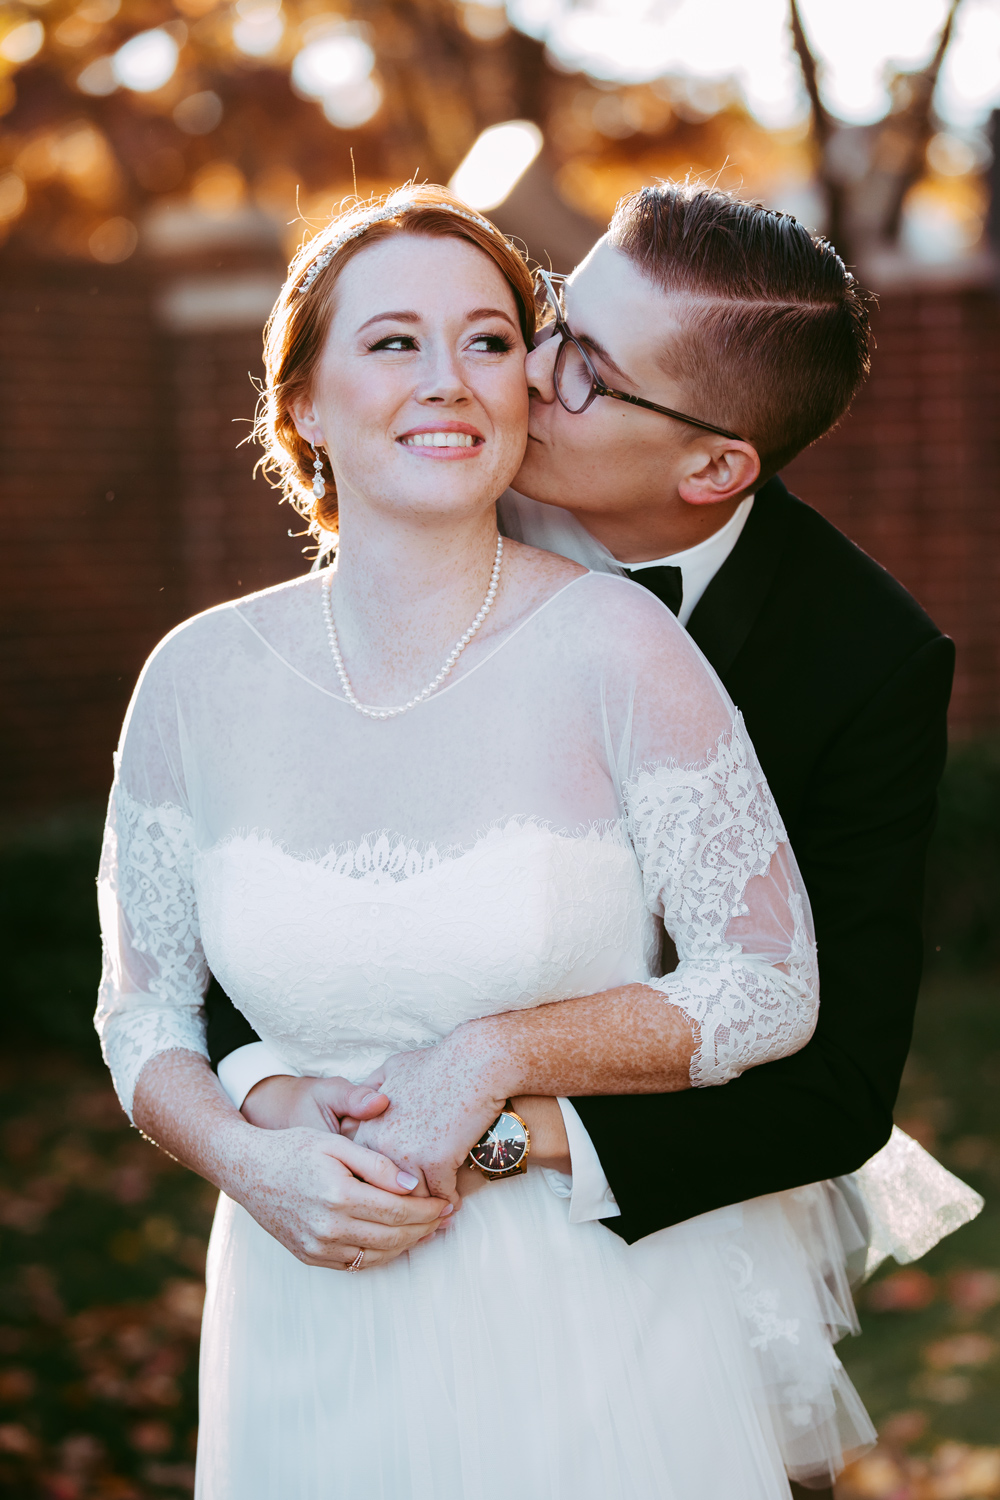 Groom embracing bride and kissing her on the cheek at a fall wedding in Oklahoma by Amanda Lynn Photography.